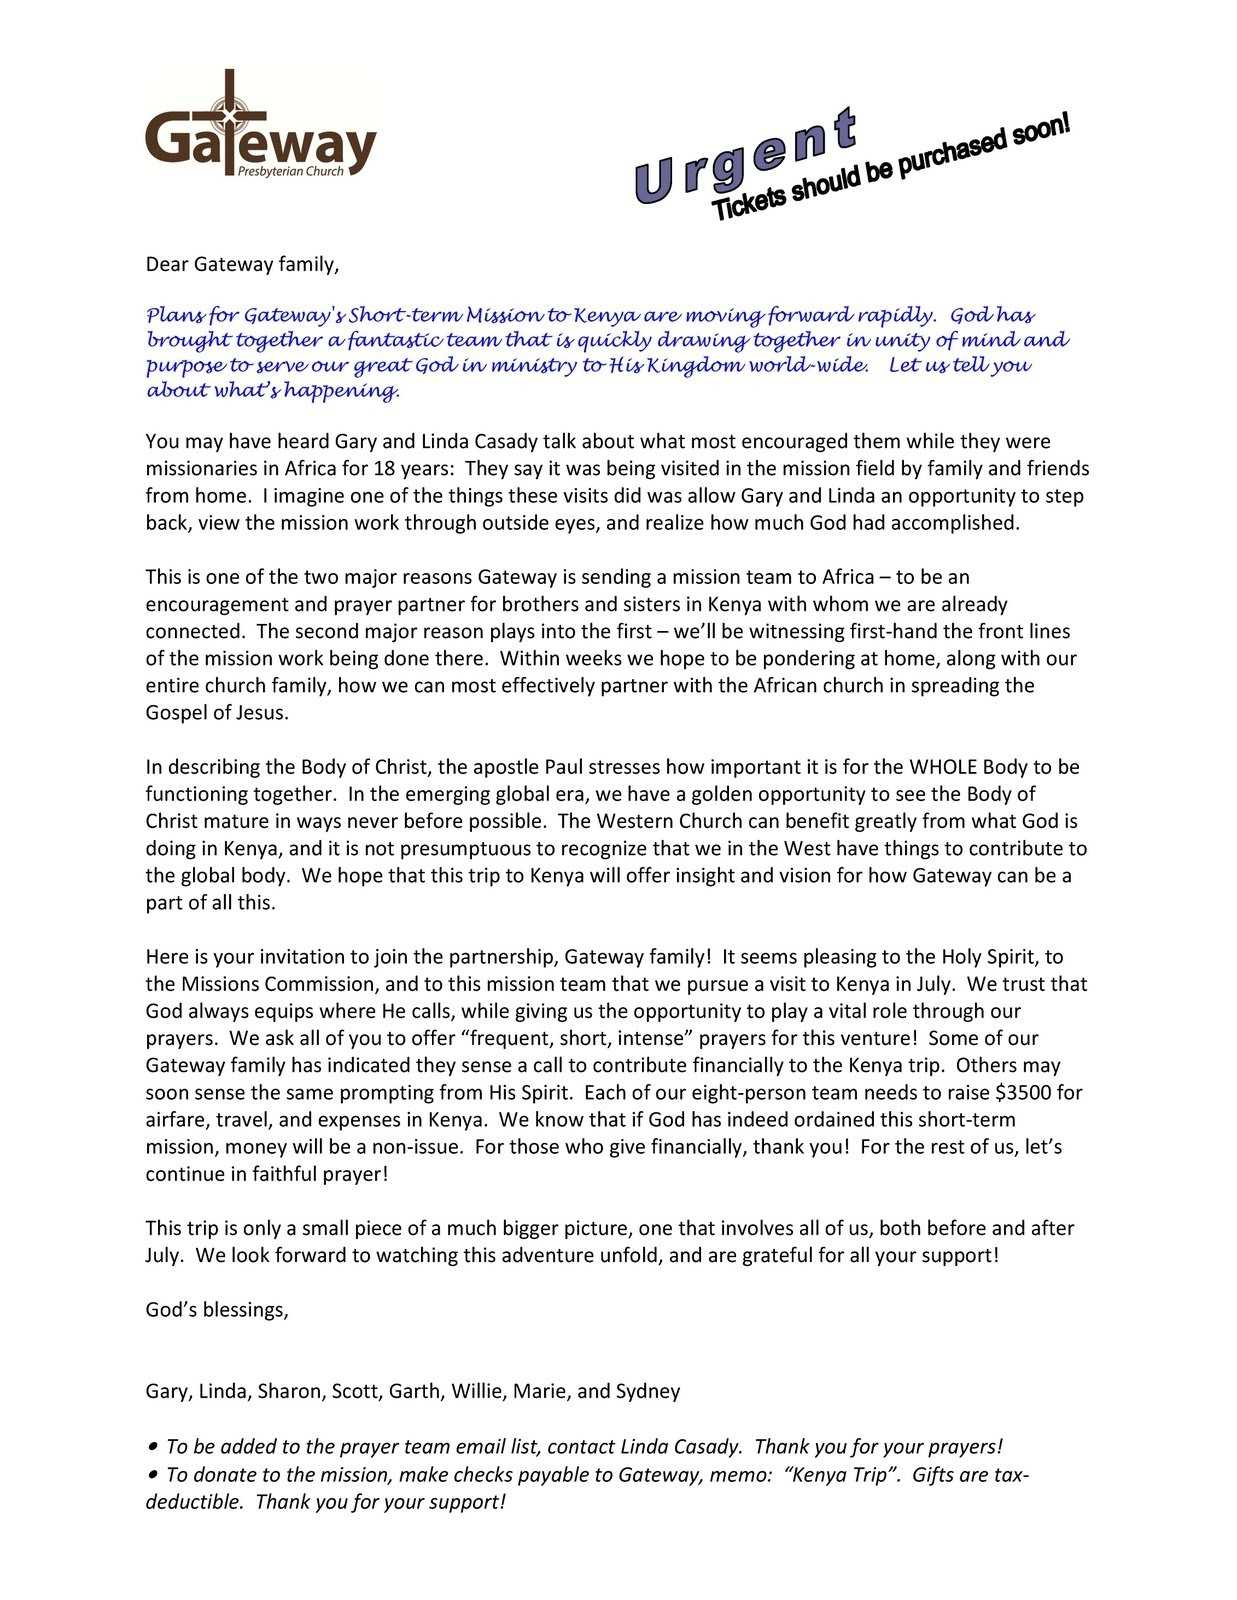 Mission trip letter template collection letter templates mission trip letter template early childhood philosophy statement examples along with mission spiritdancerdesigns Image collections